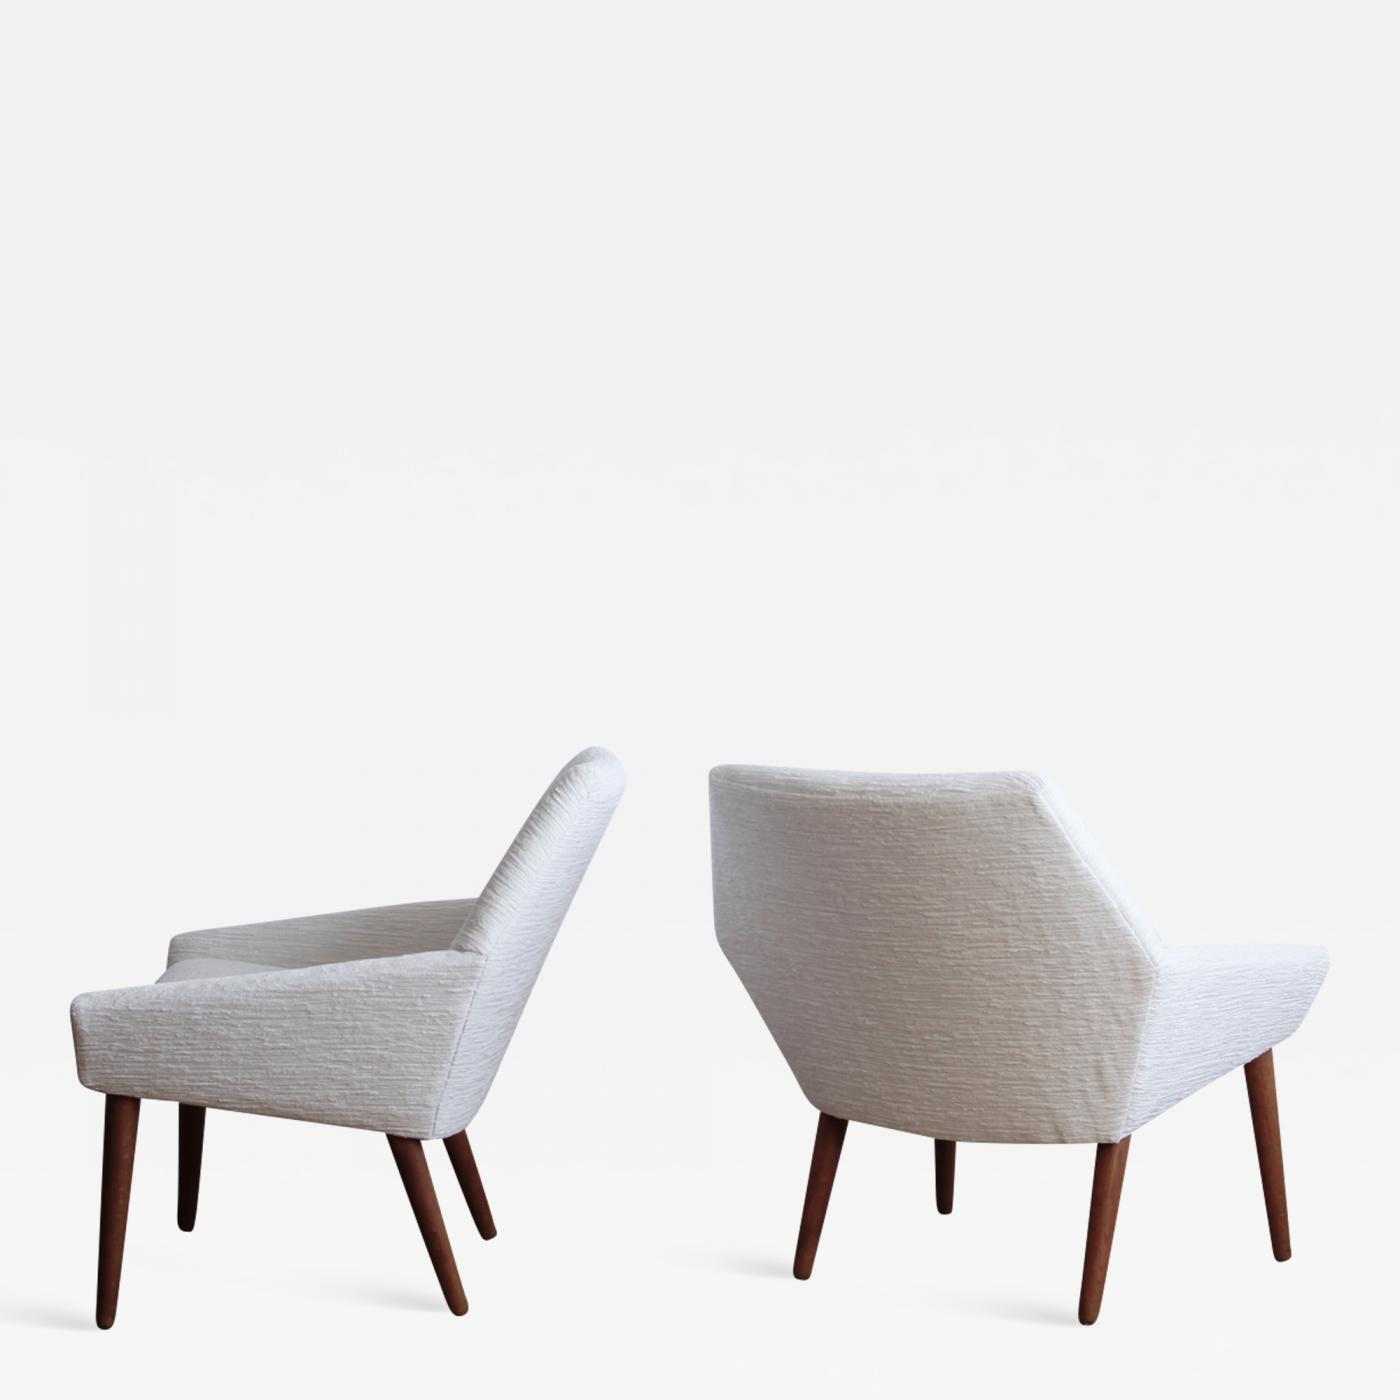 contemporary lounge chairs orange accent poul m jessen pair of danish modern by thorsbjerg jensen for pmj